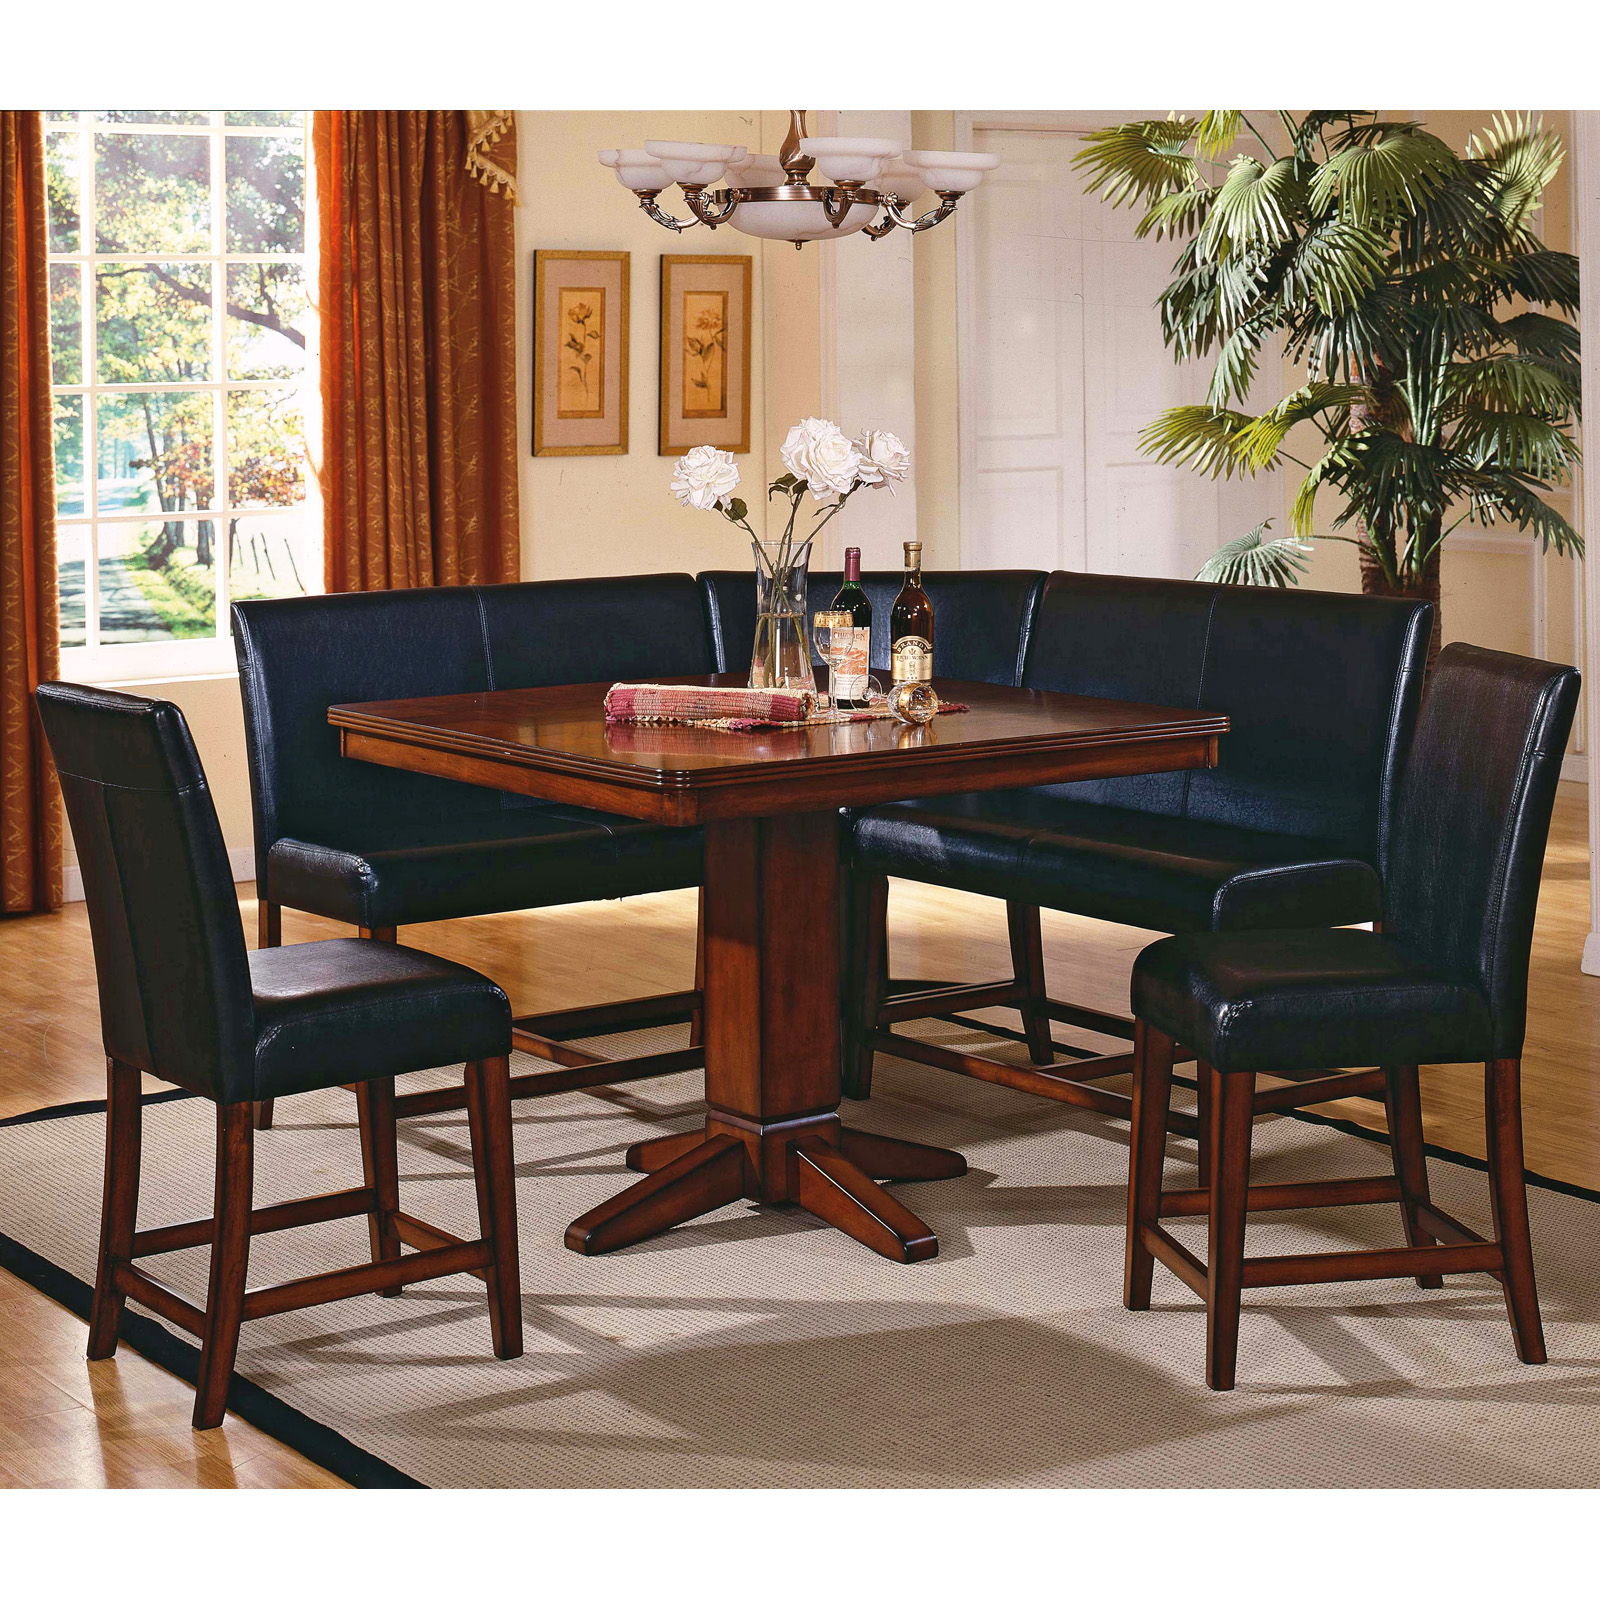 Steve silver plato 6 piece counter height nook dining - Nook kitchen table set ...